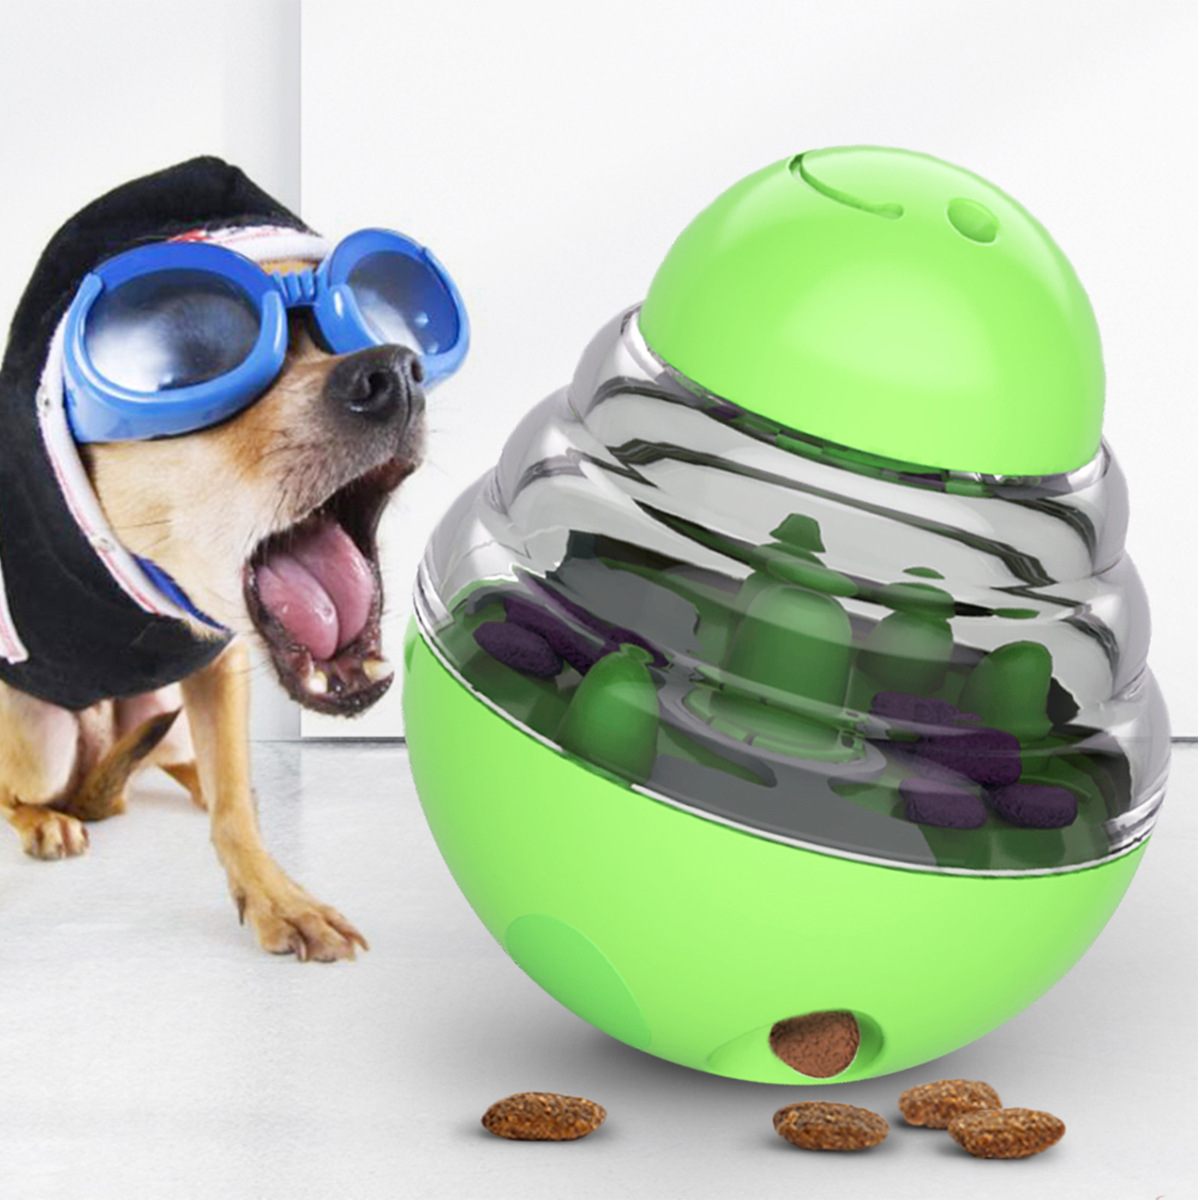 Dog Treat Dispenser Ball Toy, Interactive Treat-Dispensing Ball  PET food feeder